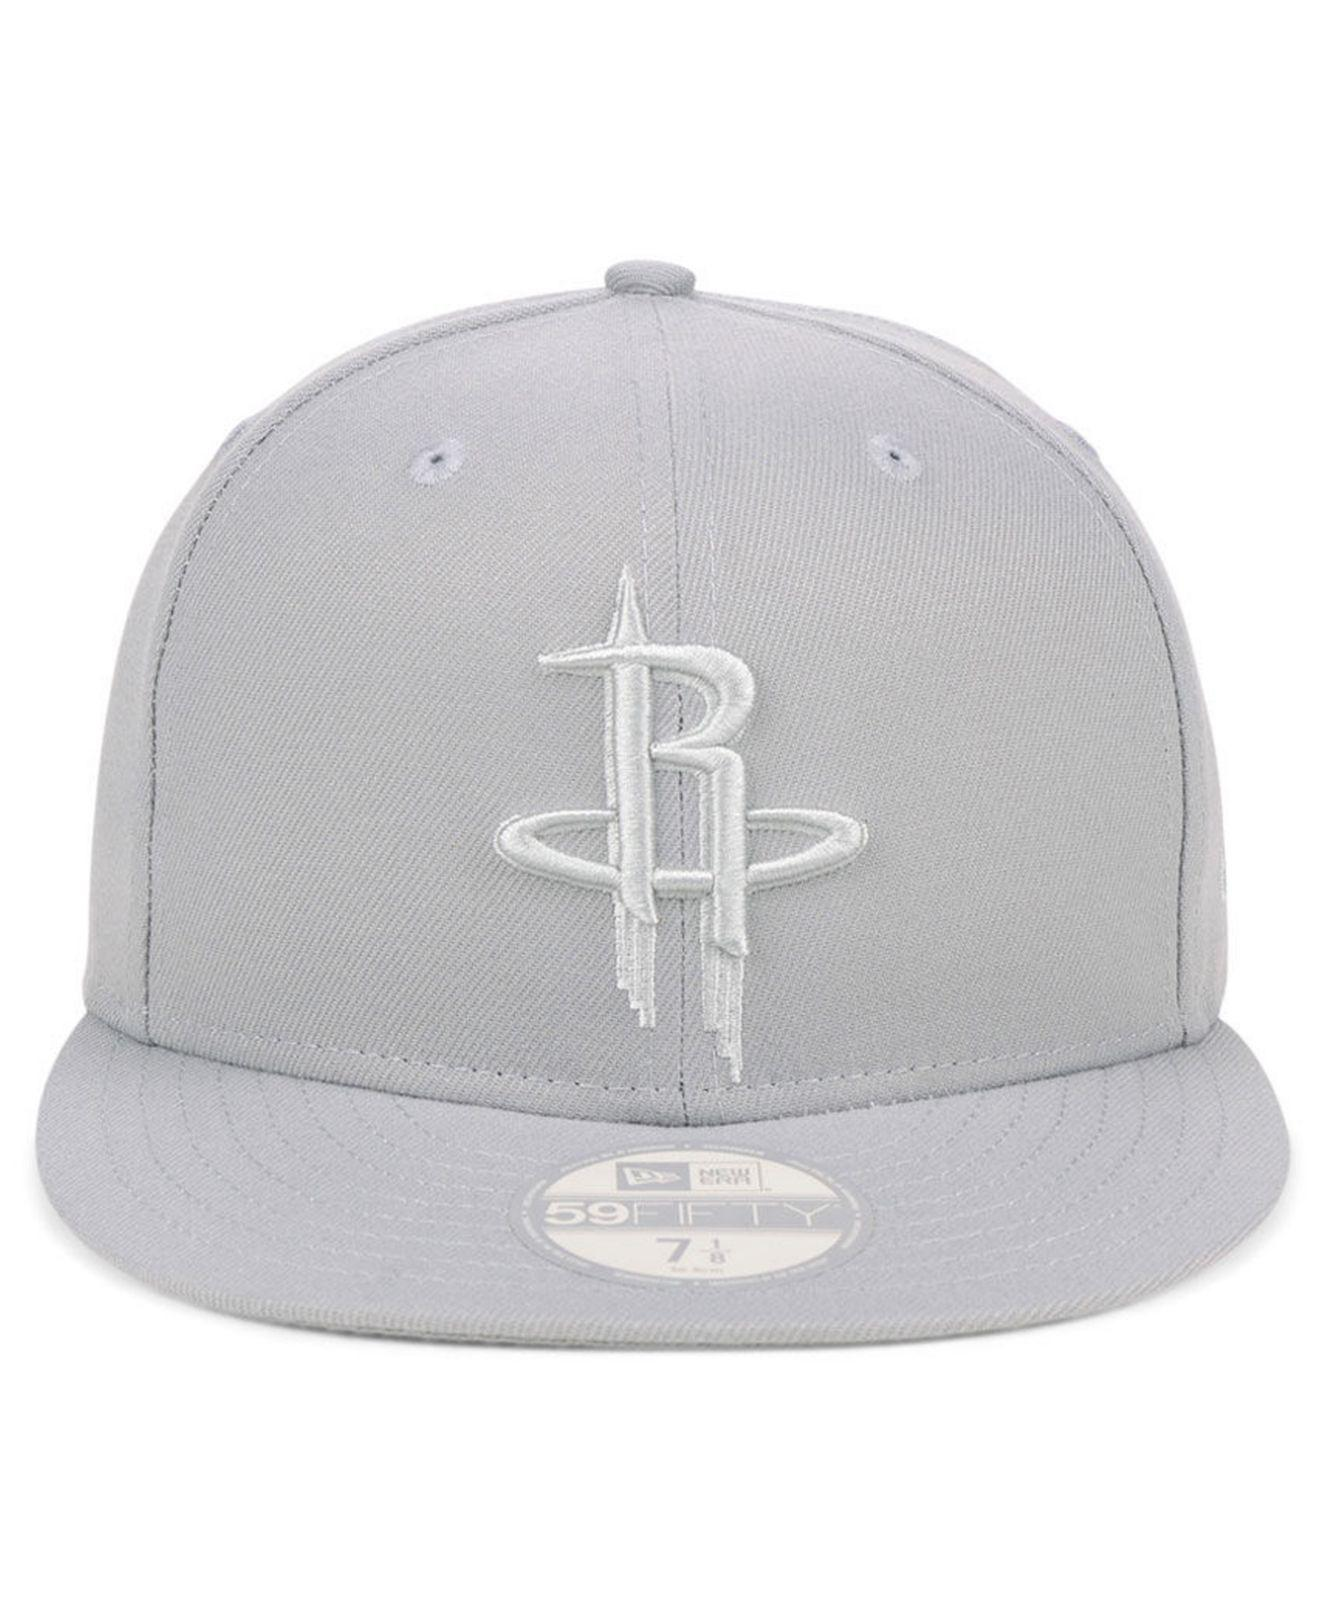 official photos 7c8e5 500d9 ... cheapest lyst ktz houston rockets fall prism pack 59fifty fitted cap in  gray for men 8dde5